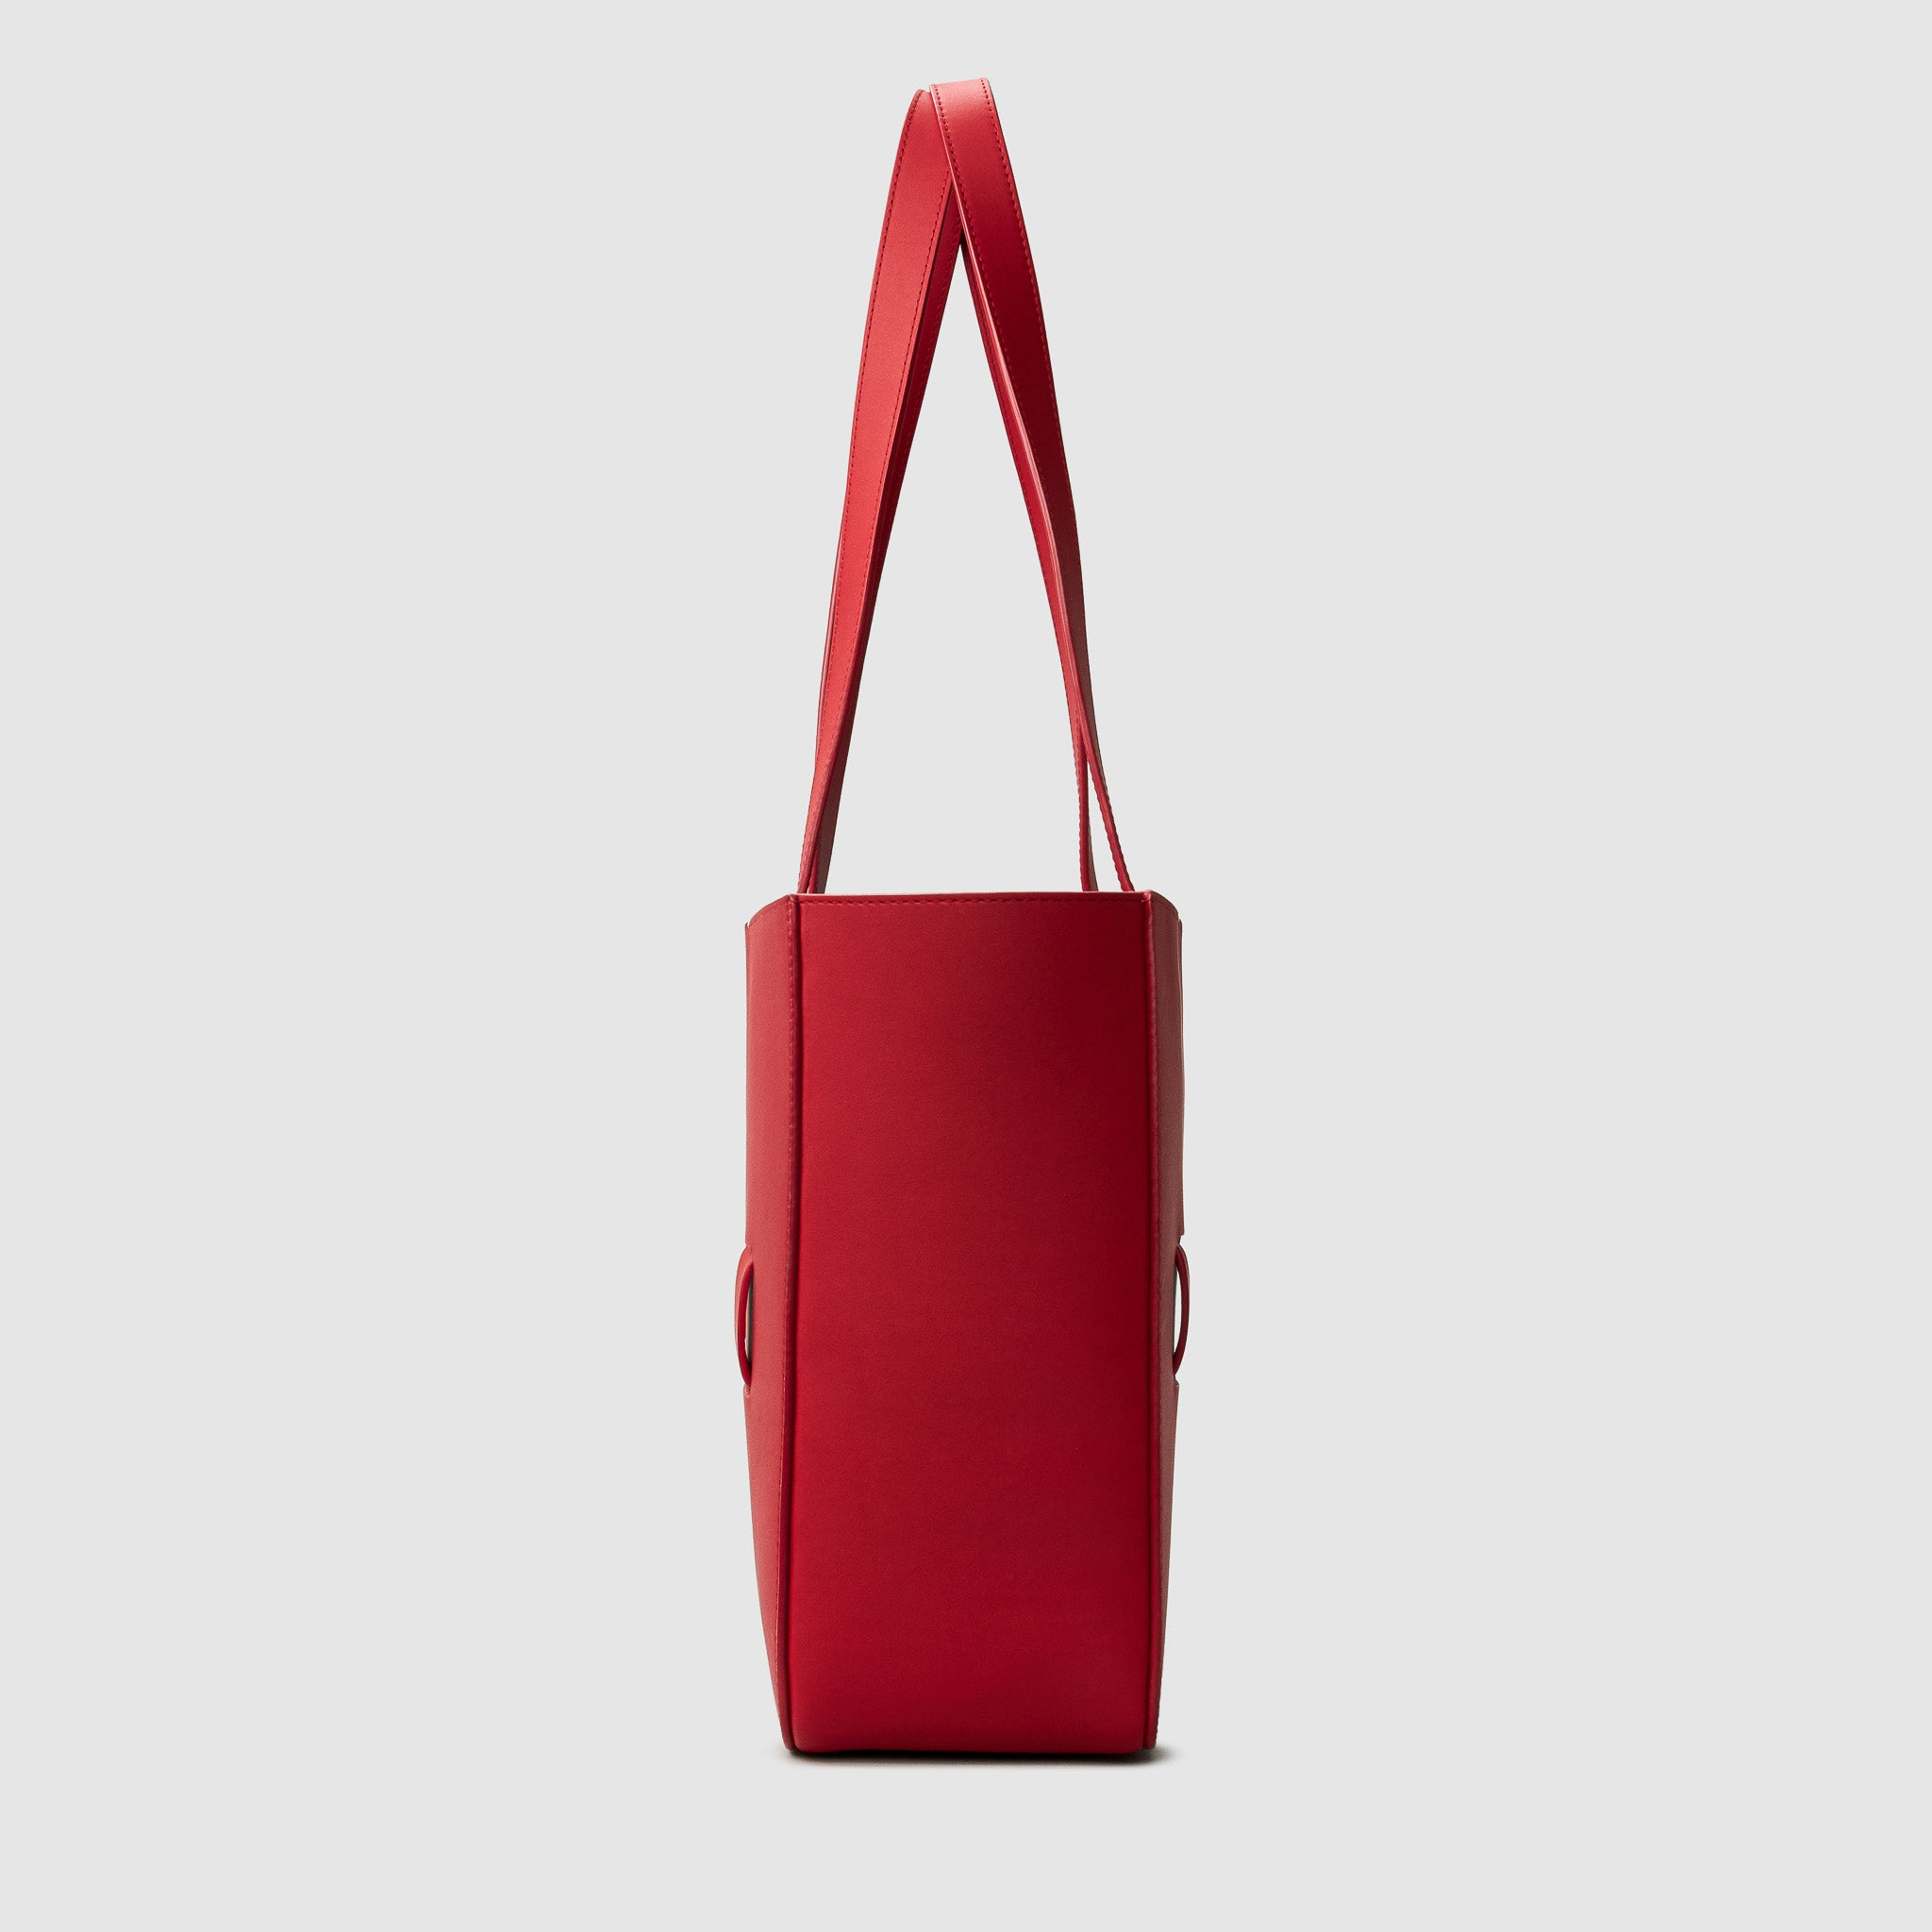 anson calder french calfskin leather tote _red